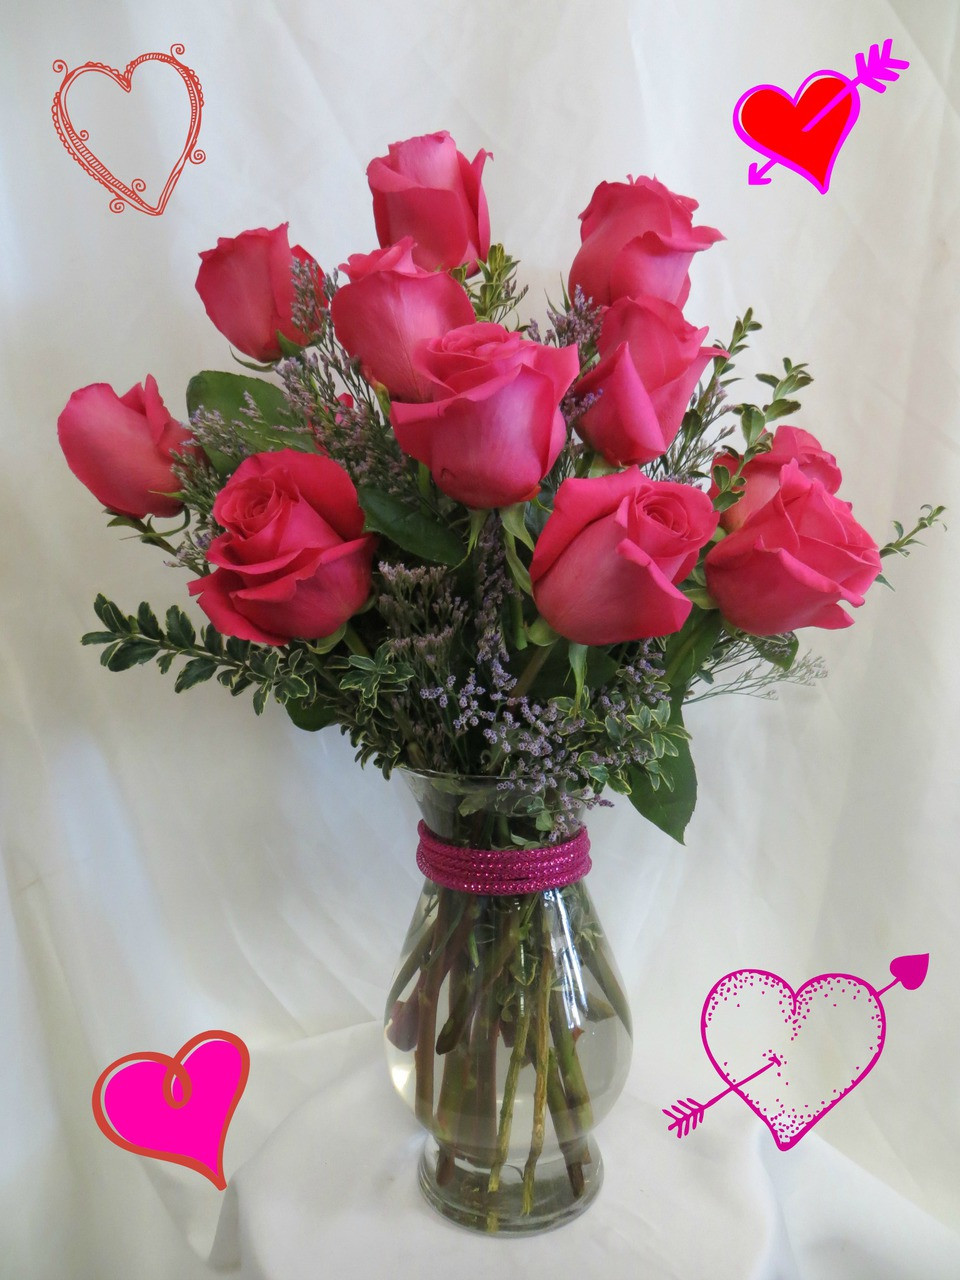 Toll Hot Pink Dozen Roses For Valentines Day From Enchanted Florist Pasadena  TX.Then Send Her